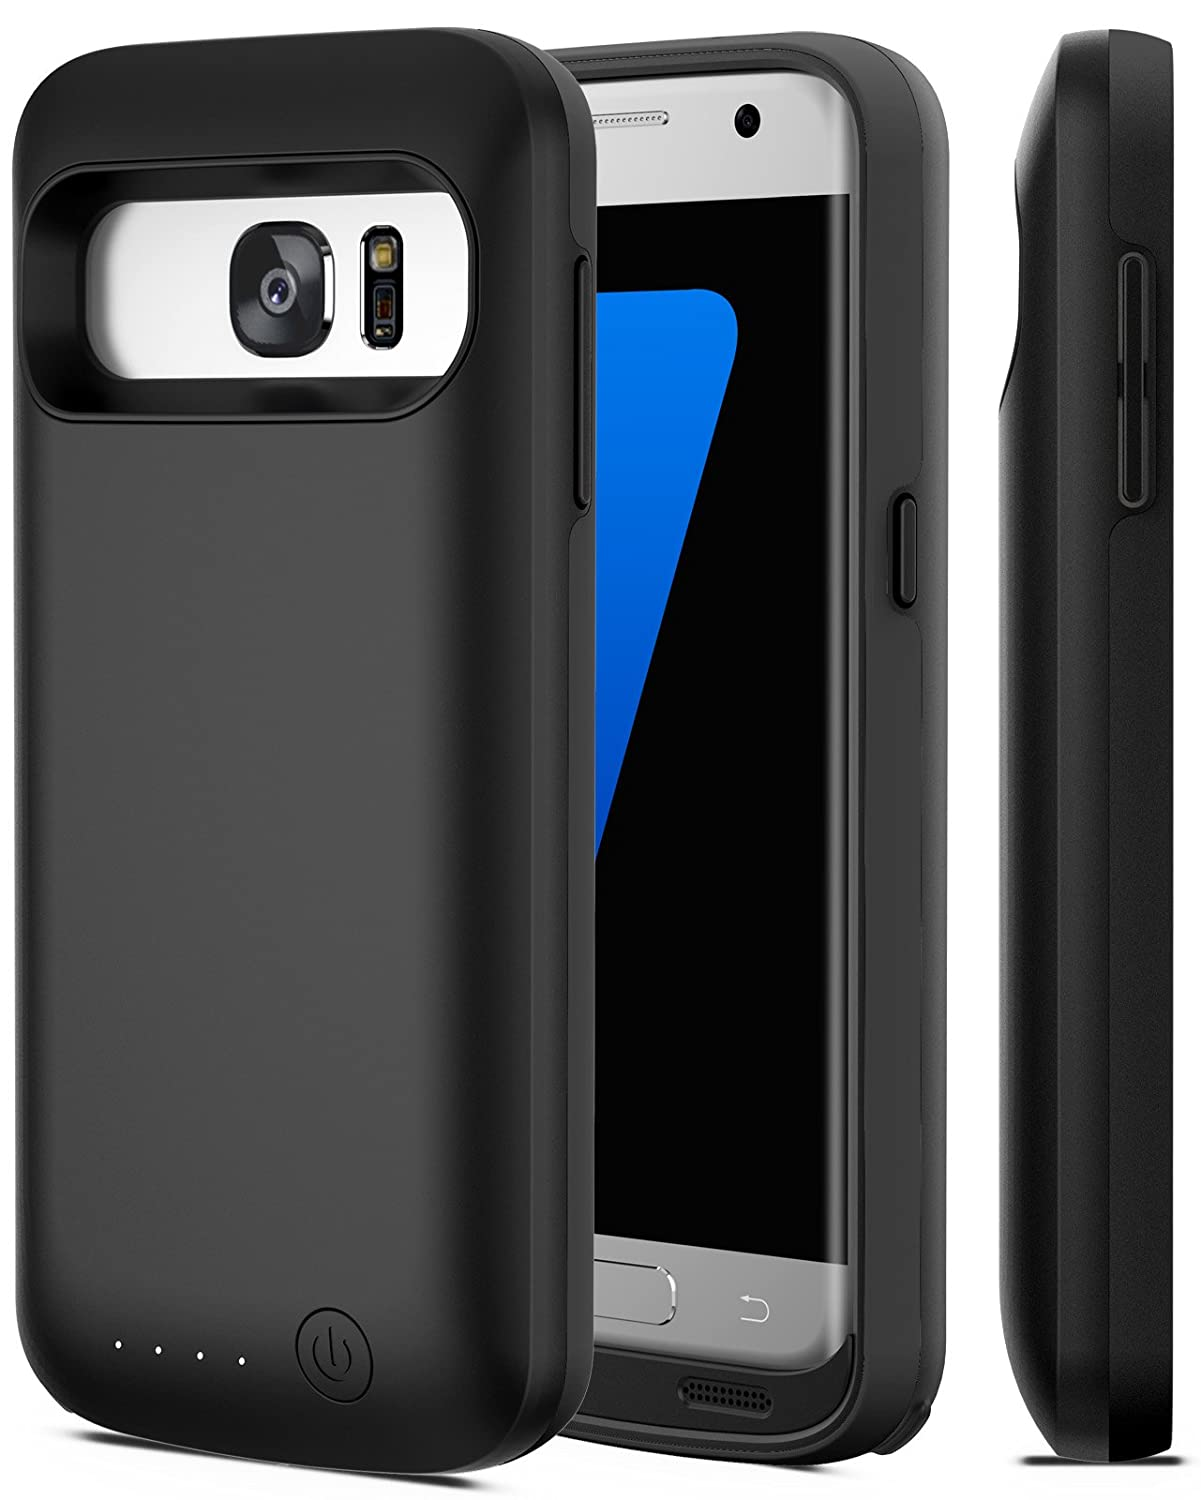 Galaxy S7 Battery Case, iPosible [5000mAh] External Battery Charger Case for The Galaxy S7 Charging Power Battery Pack-Black [24 Month Warranty] 4326446879